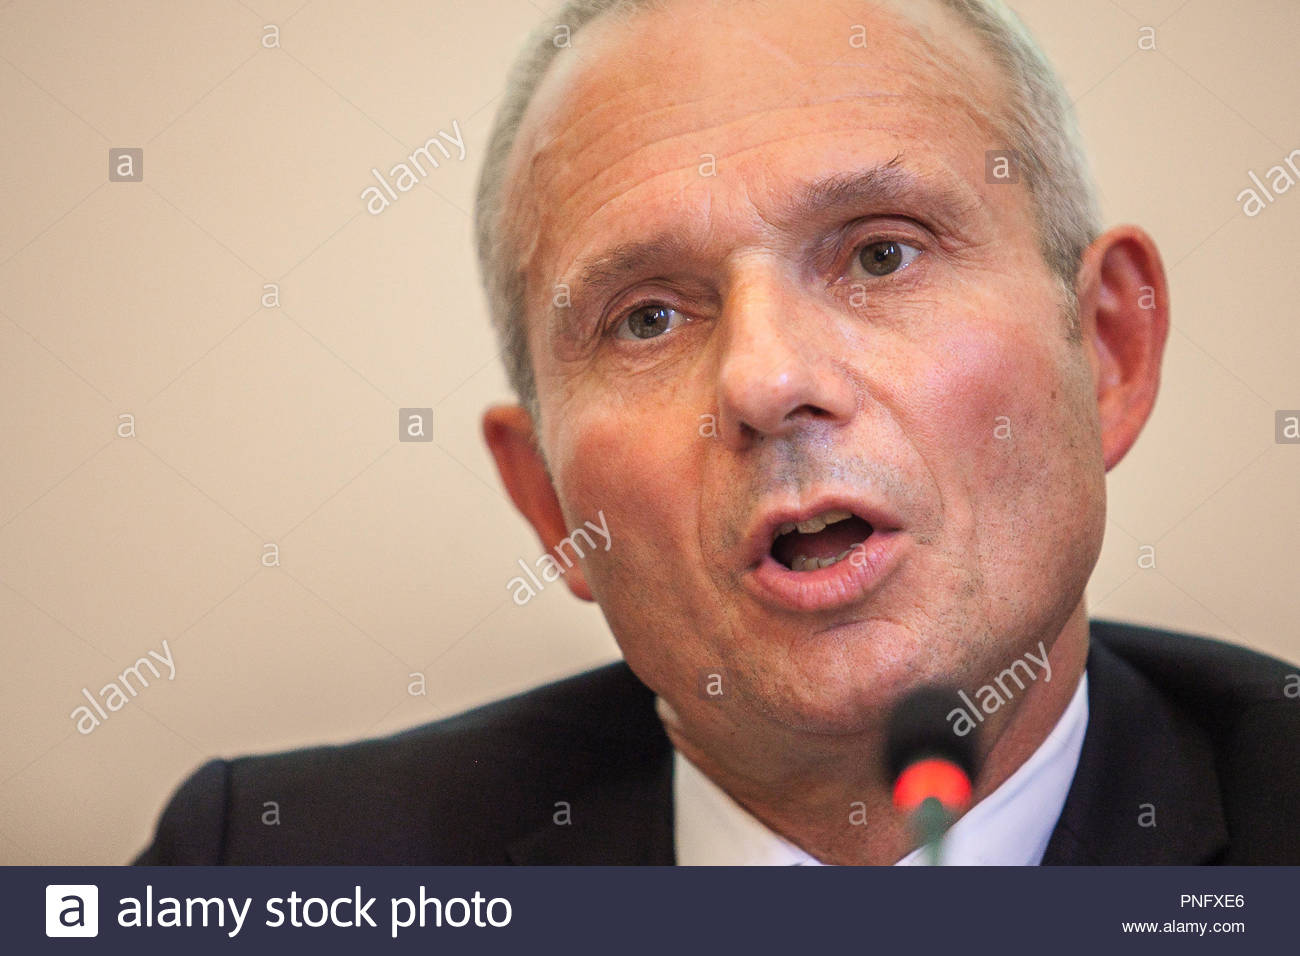 Siena, ITALY. 21 September, 2018.David Lidington, Vice Premier UK, speaks during the XXVI Putignano Conference, the conference is one of the most important annual events in the bilateral relationship between the United Kingdom and Italyon September 31, 2018 in Venice, Italy. © Mario Llorca/Awakening/Alamy Live News - Stock Image